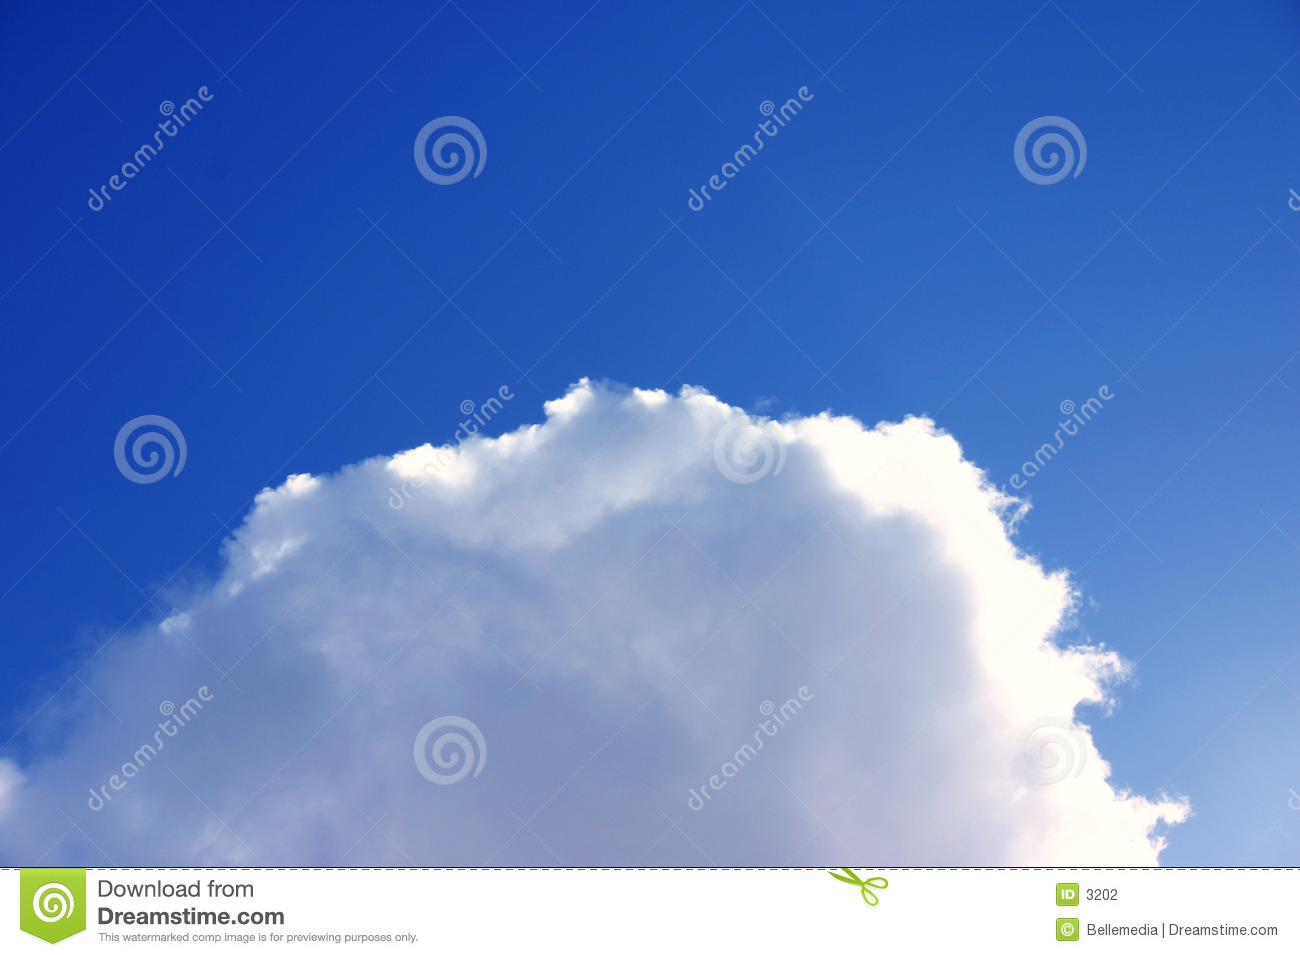 King of the clouds